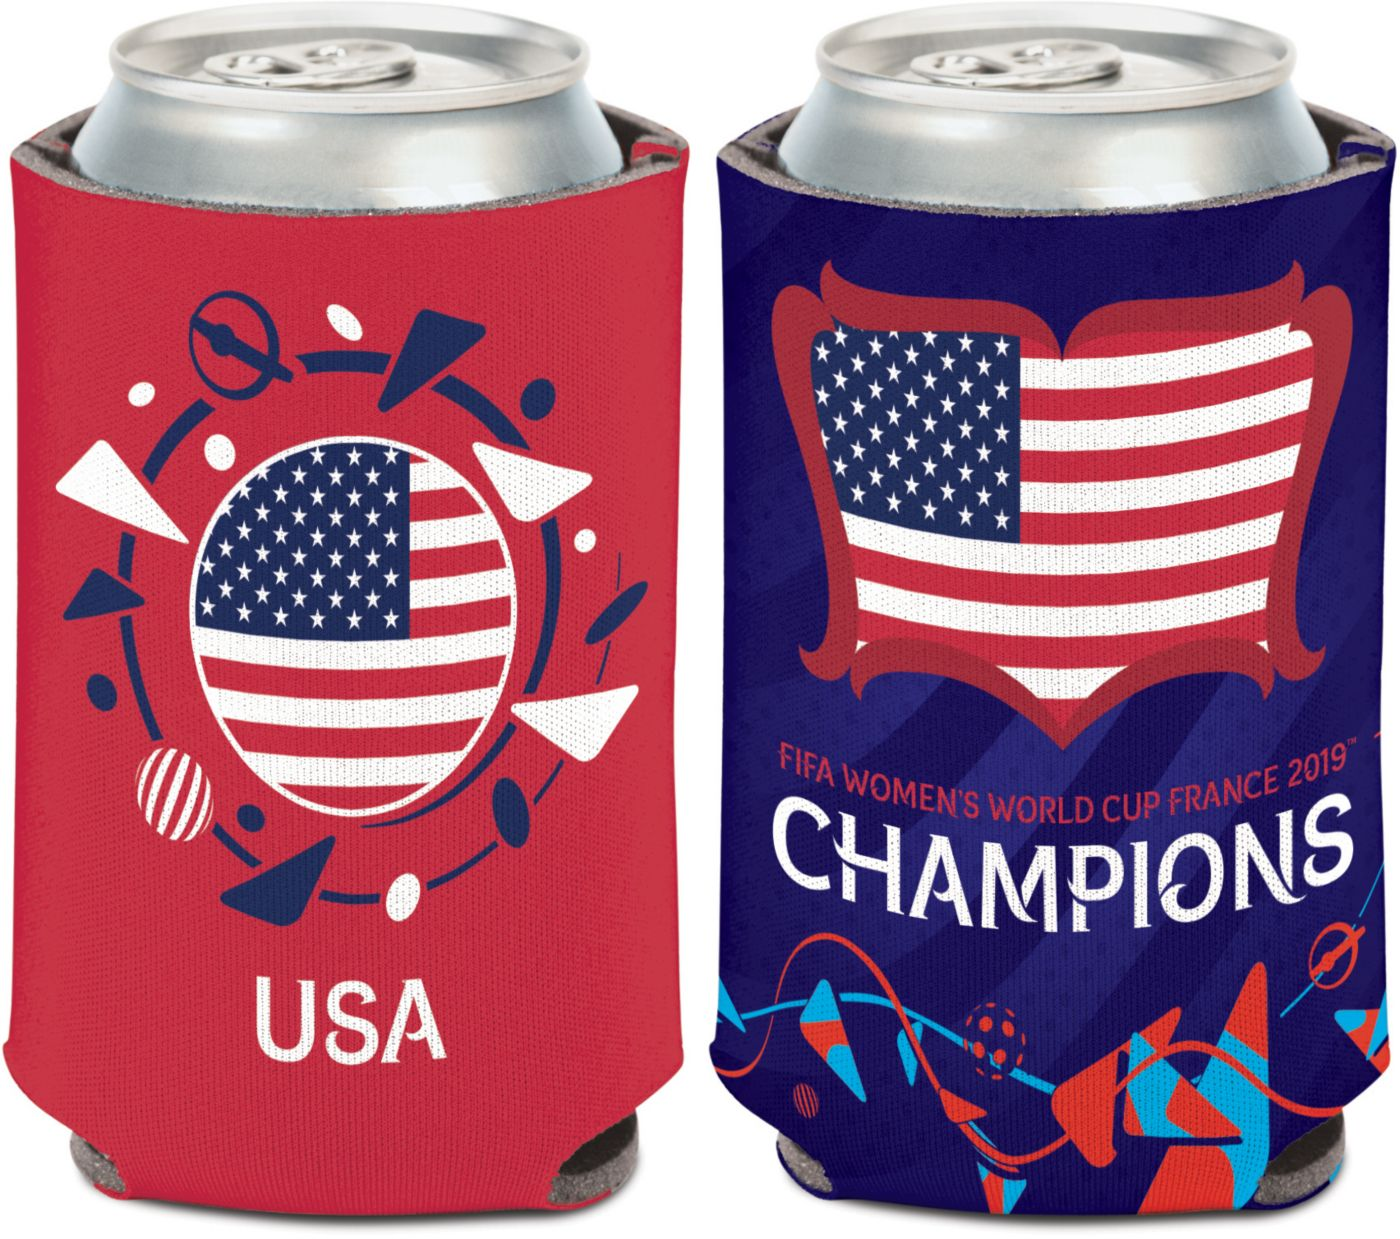 WinCraft 2019 FIFA Women's World Cup Champions USA Soccer Can Cooler